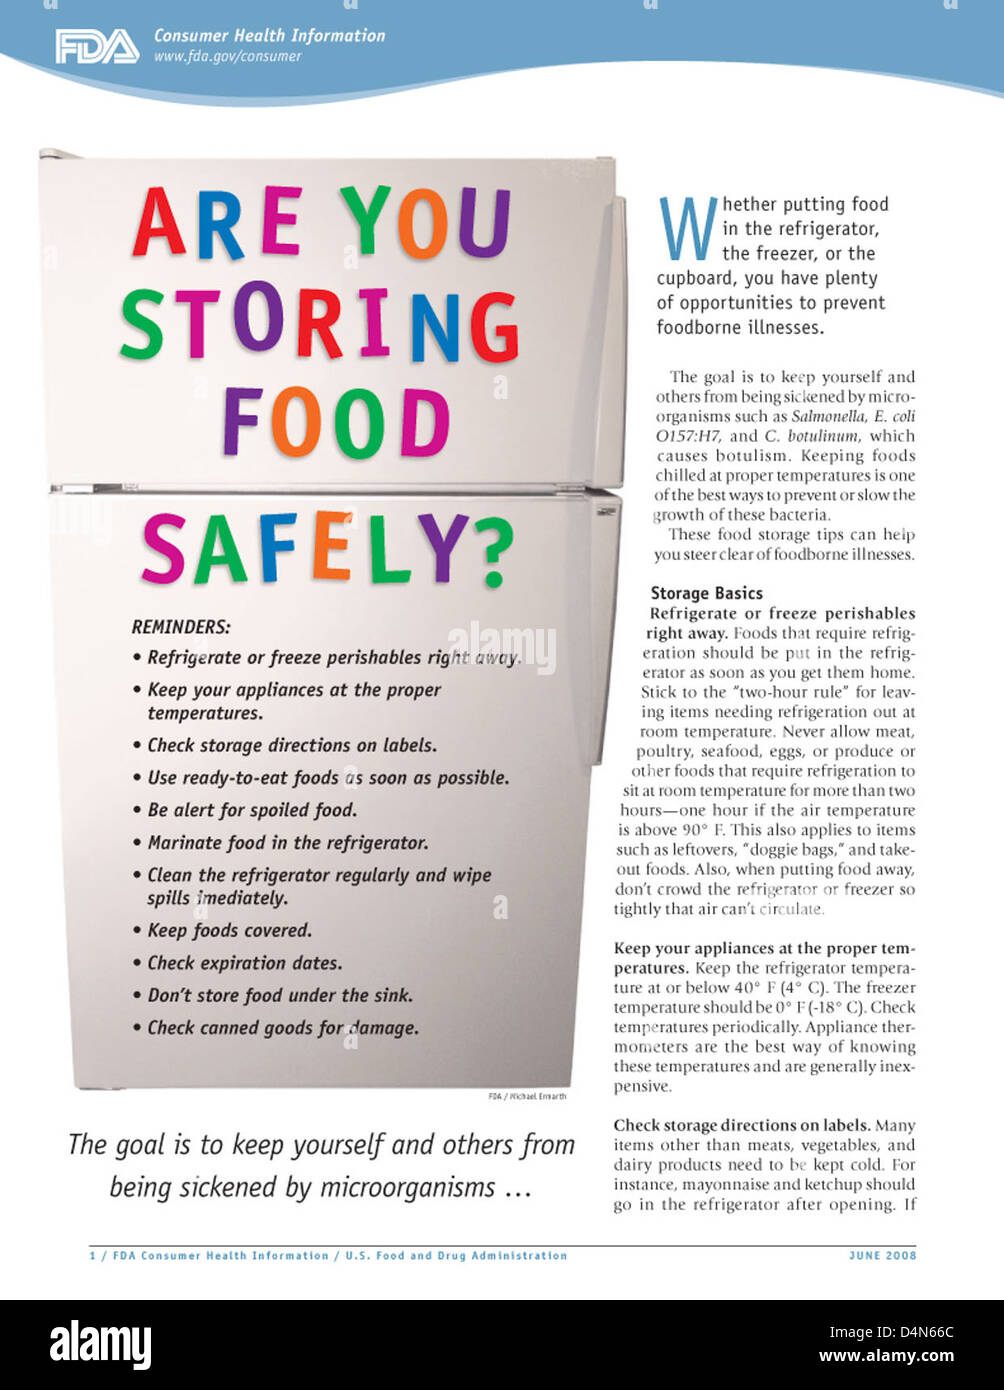 Are You Storing Food Safely? Stock Photo